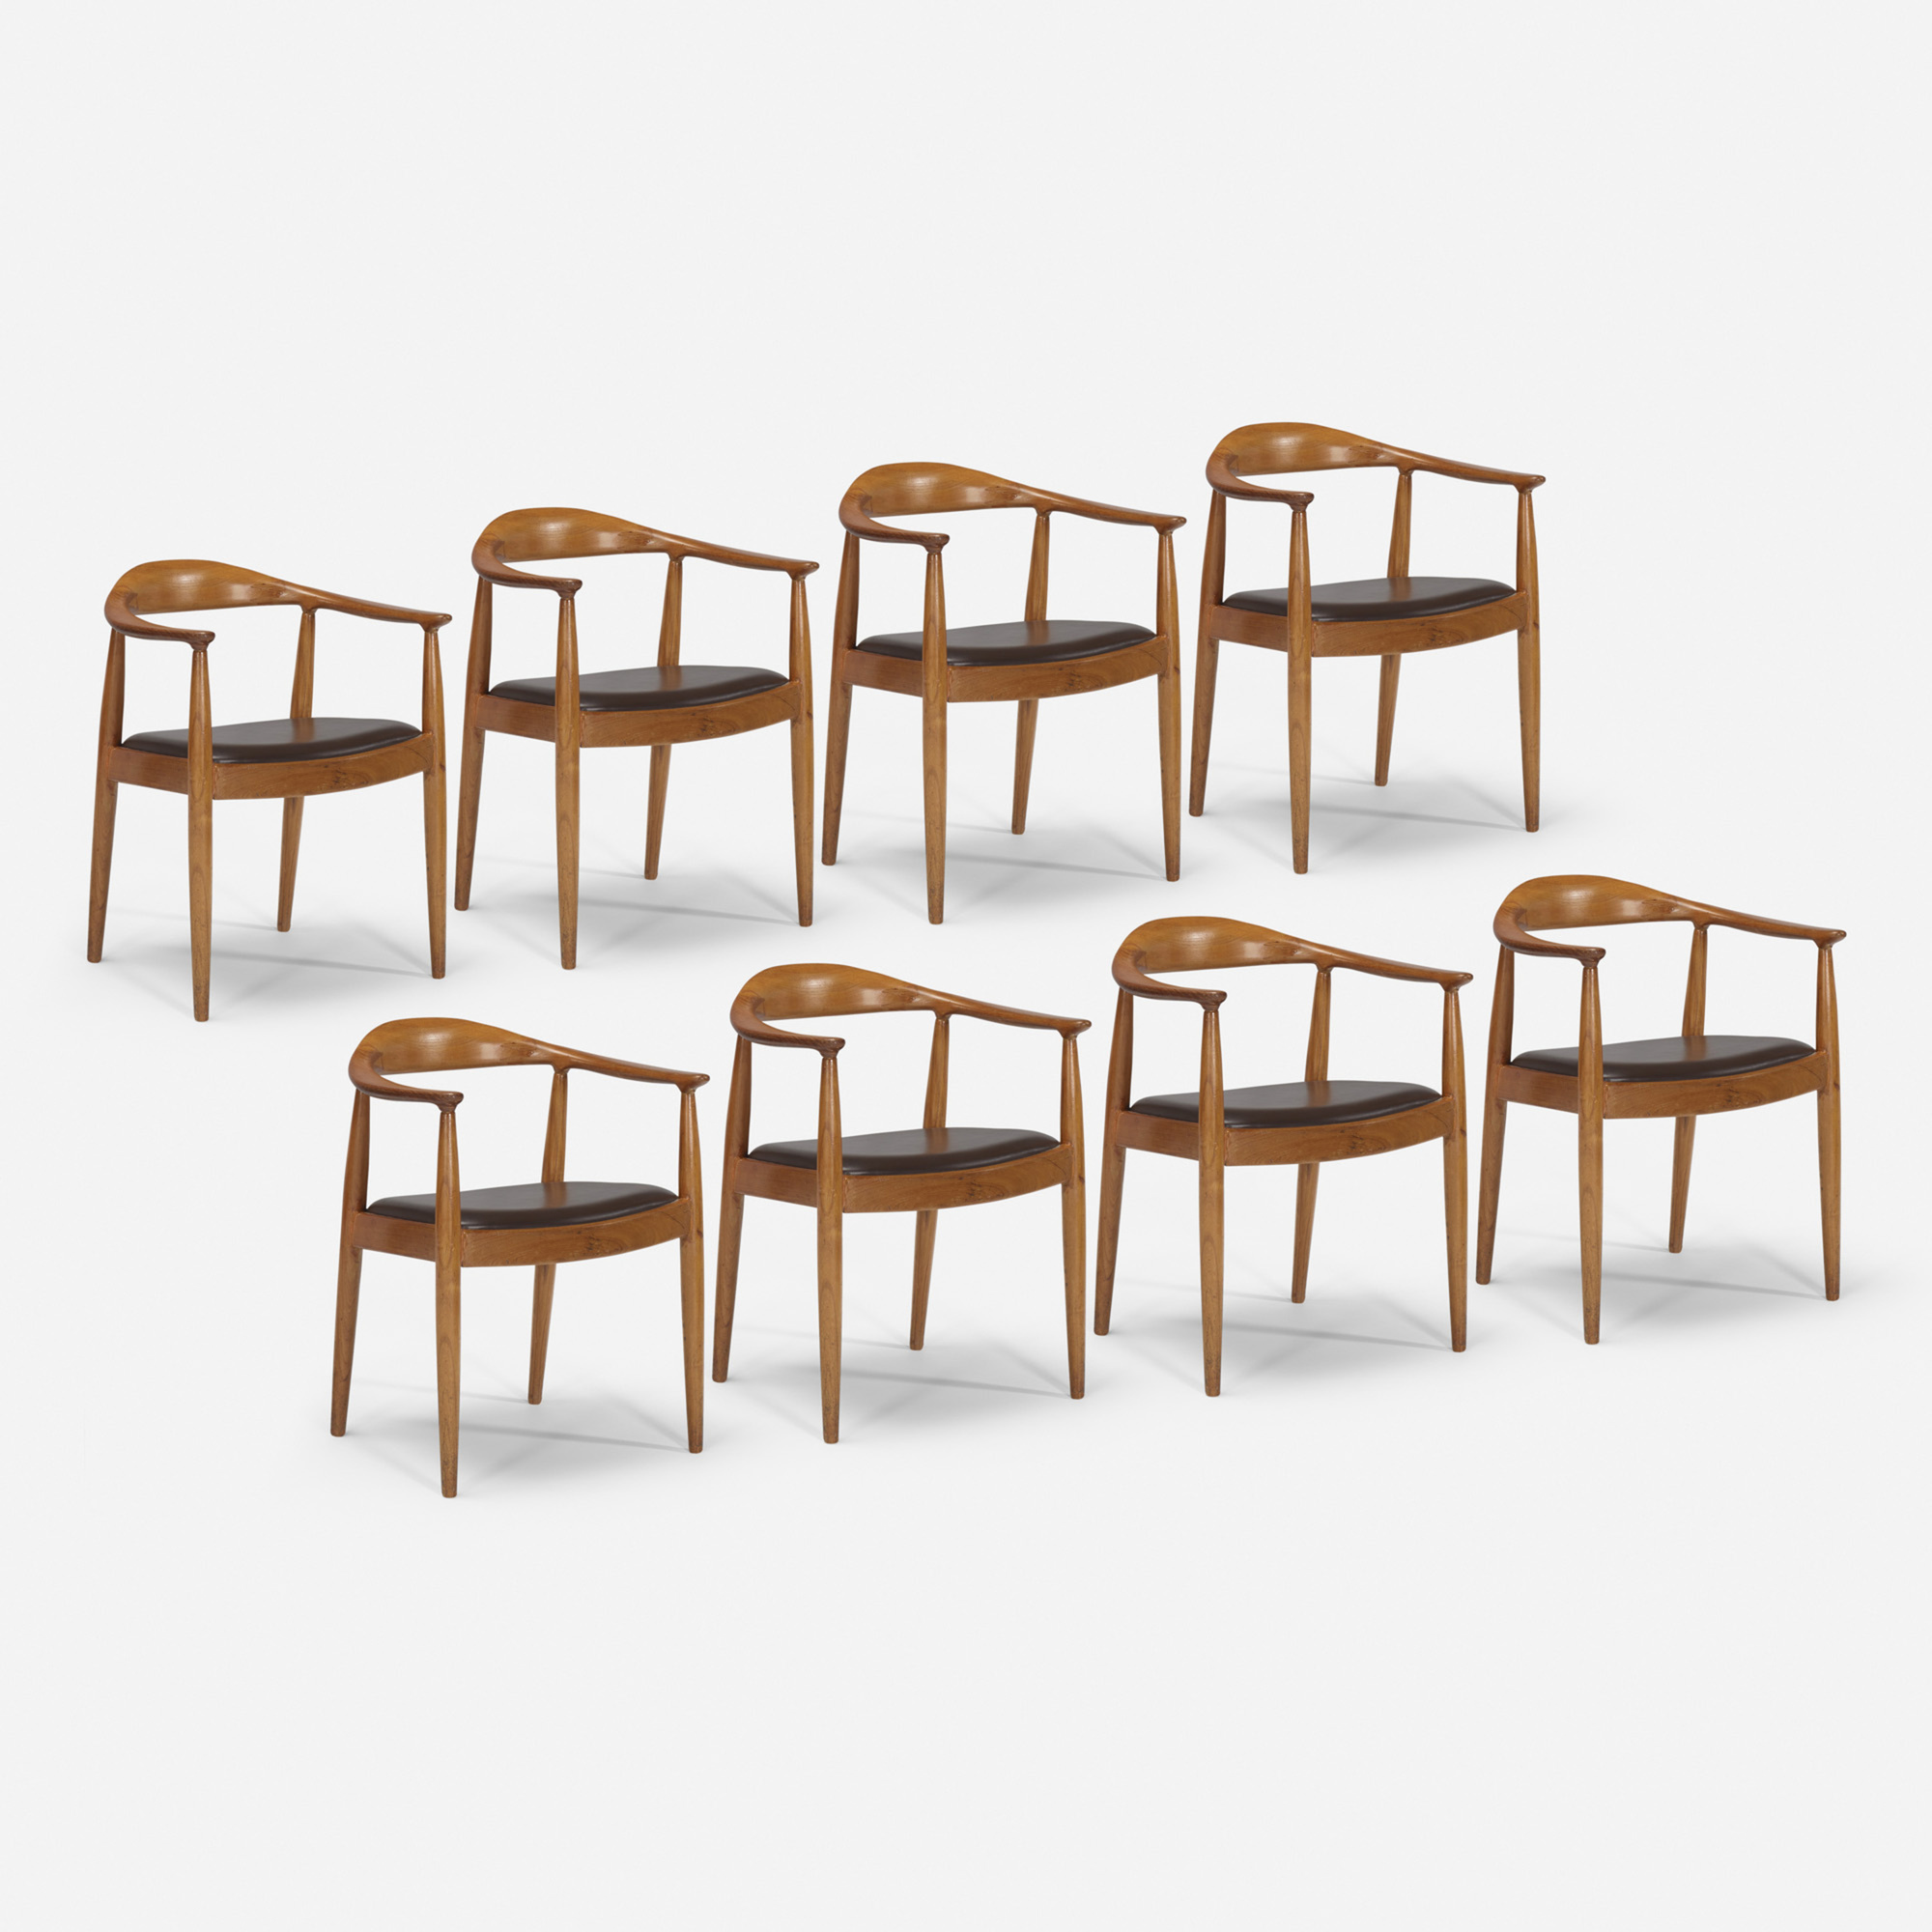 400: Hans J. Wegner / The Chairs from the mezzanine of the Grill Room, set of eight (1 of 1)